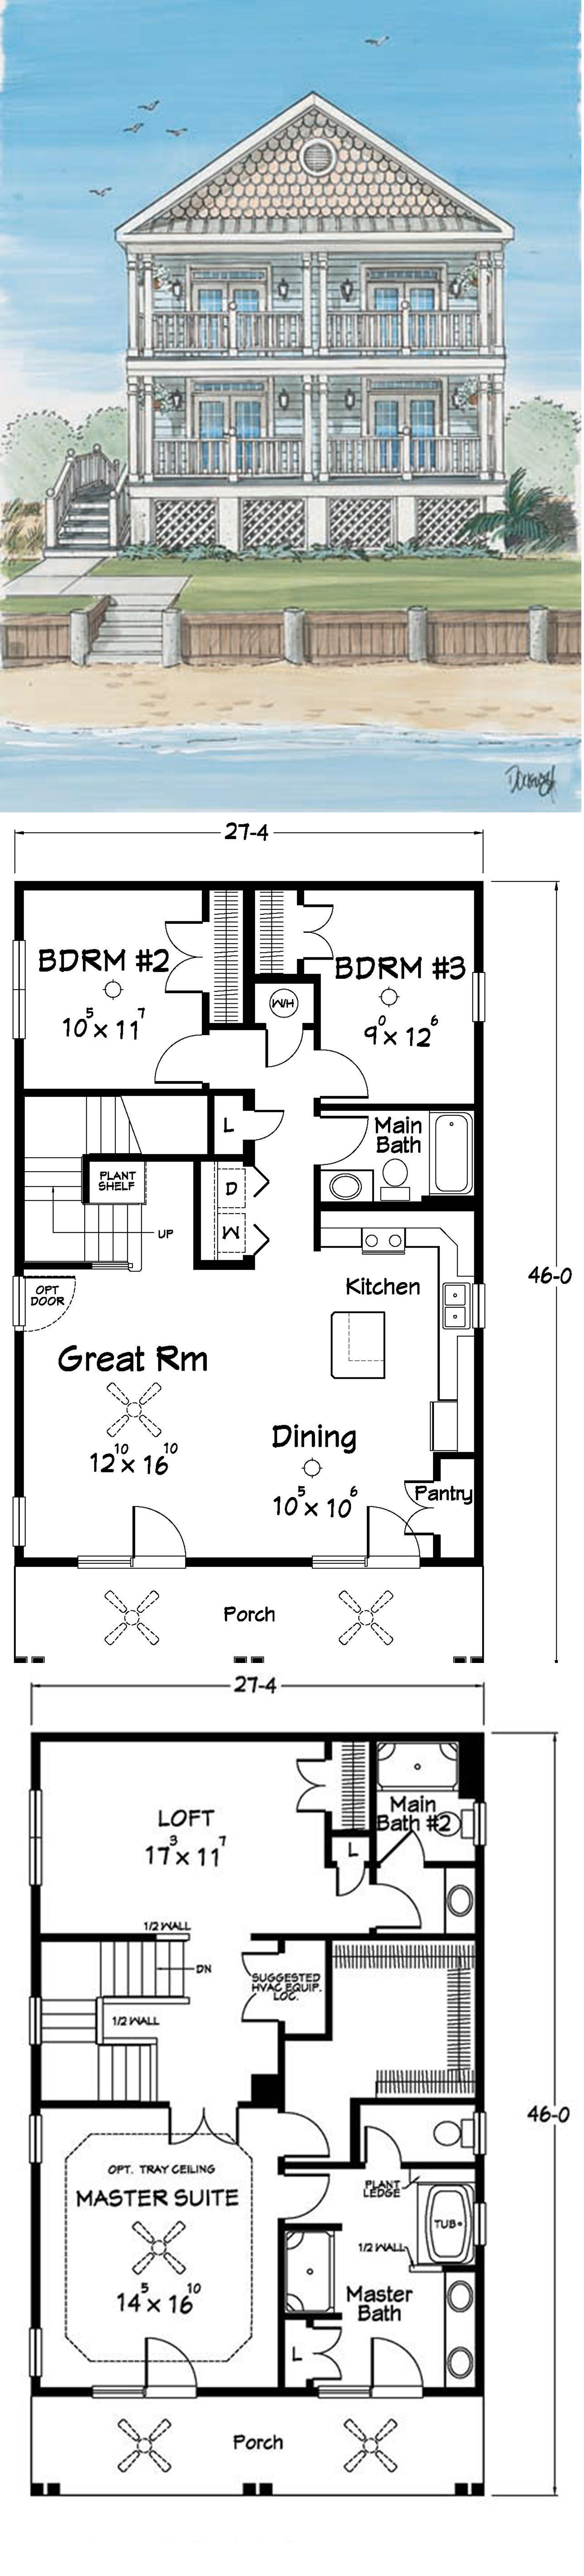 Go Coastal With This 2 Story What S Your Favorite Room Modular Home Manufacturers Camping Planning Dream Beach Houses